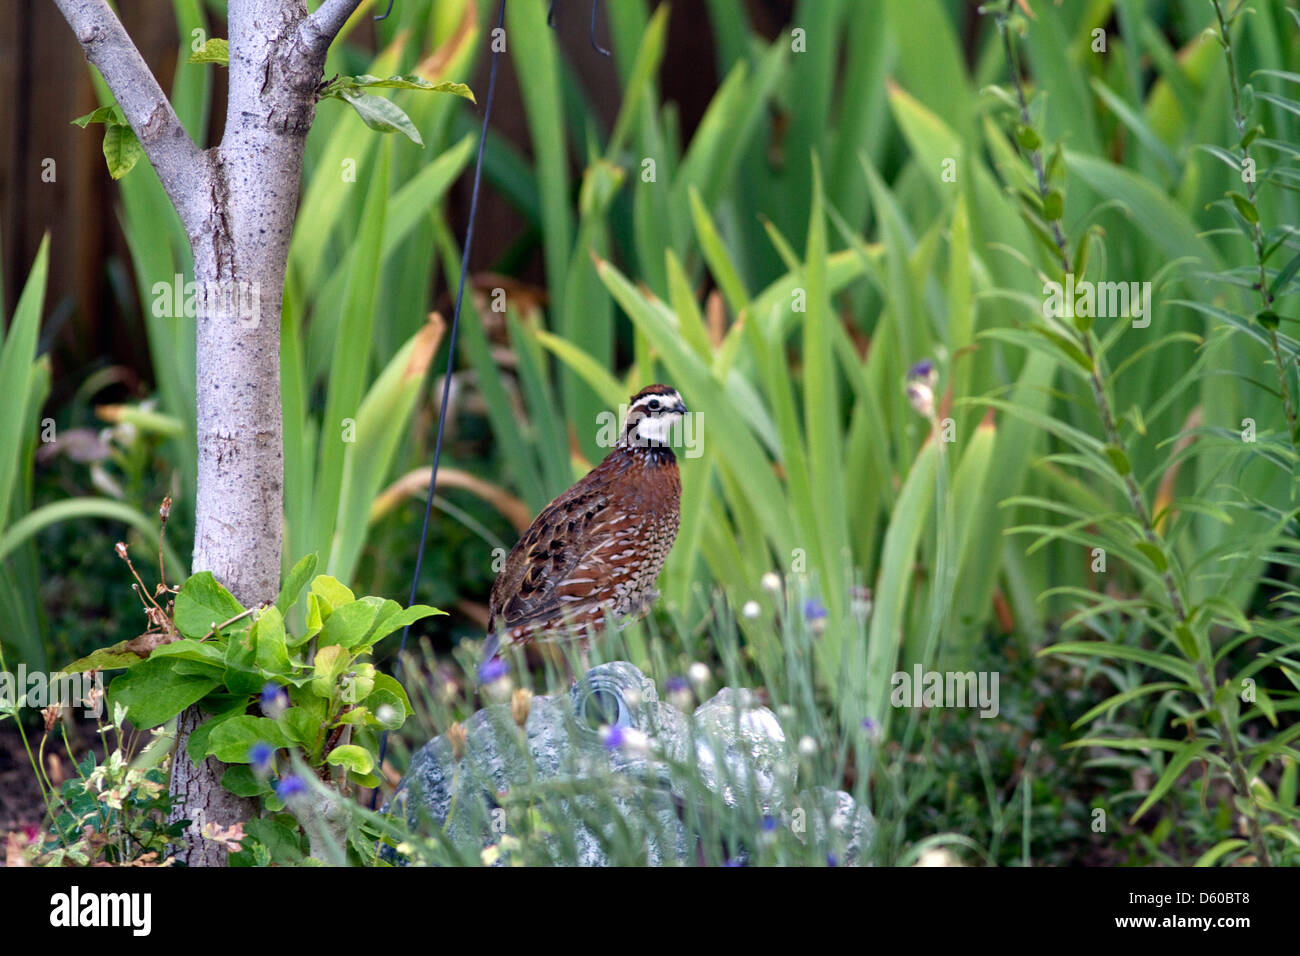 Adult male Northern Bobwhite quail in a residential backyard, Boise, Idaho, USA. - Stock Image